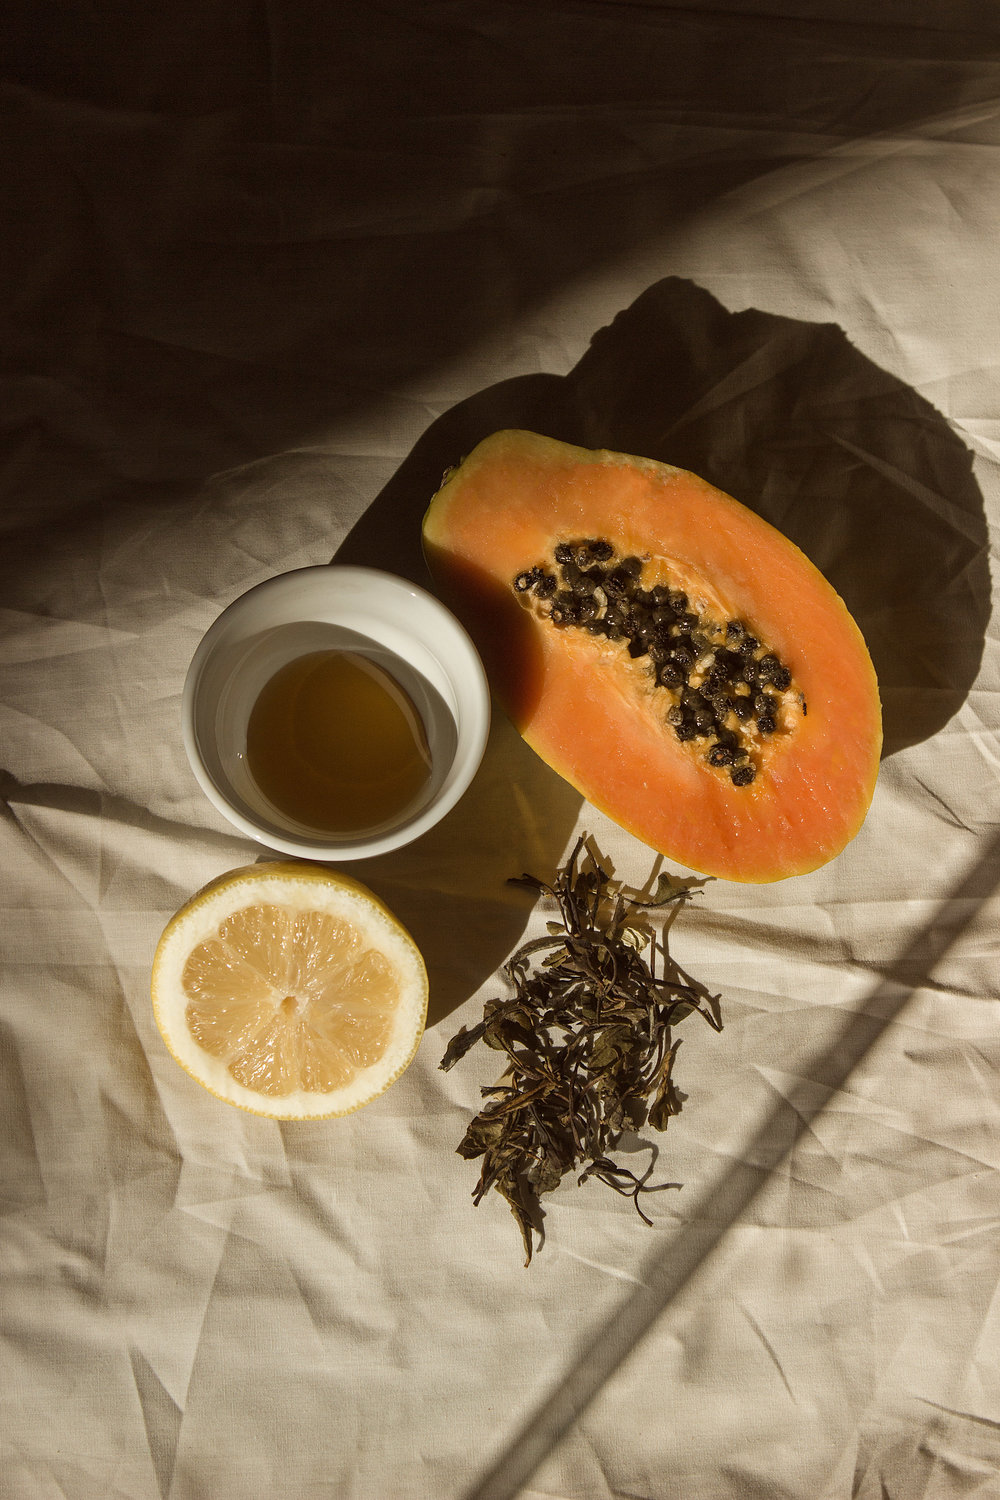 Ingredients -  1 slice of Papaya1 slice of Lemon2 teaspoons HoneyA few teaspoons of loose White Tea